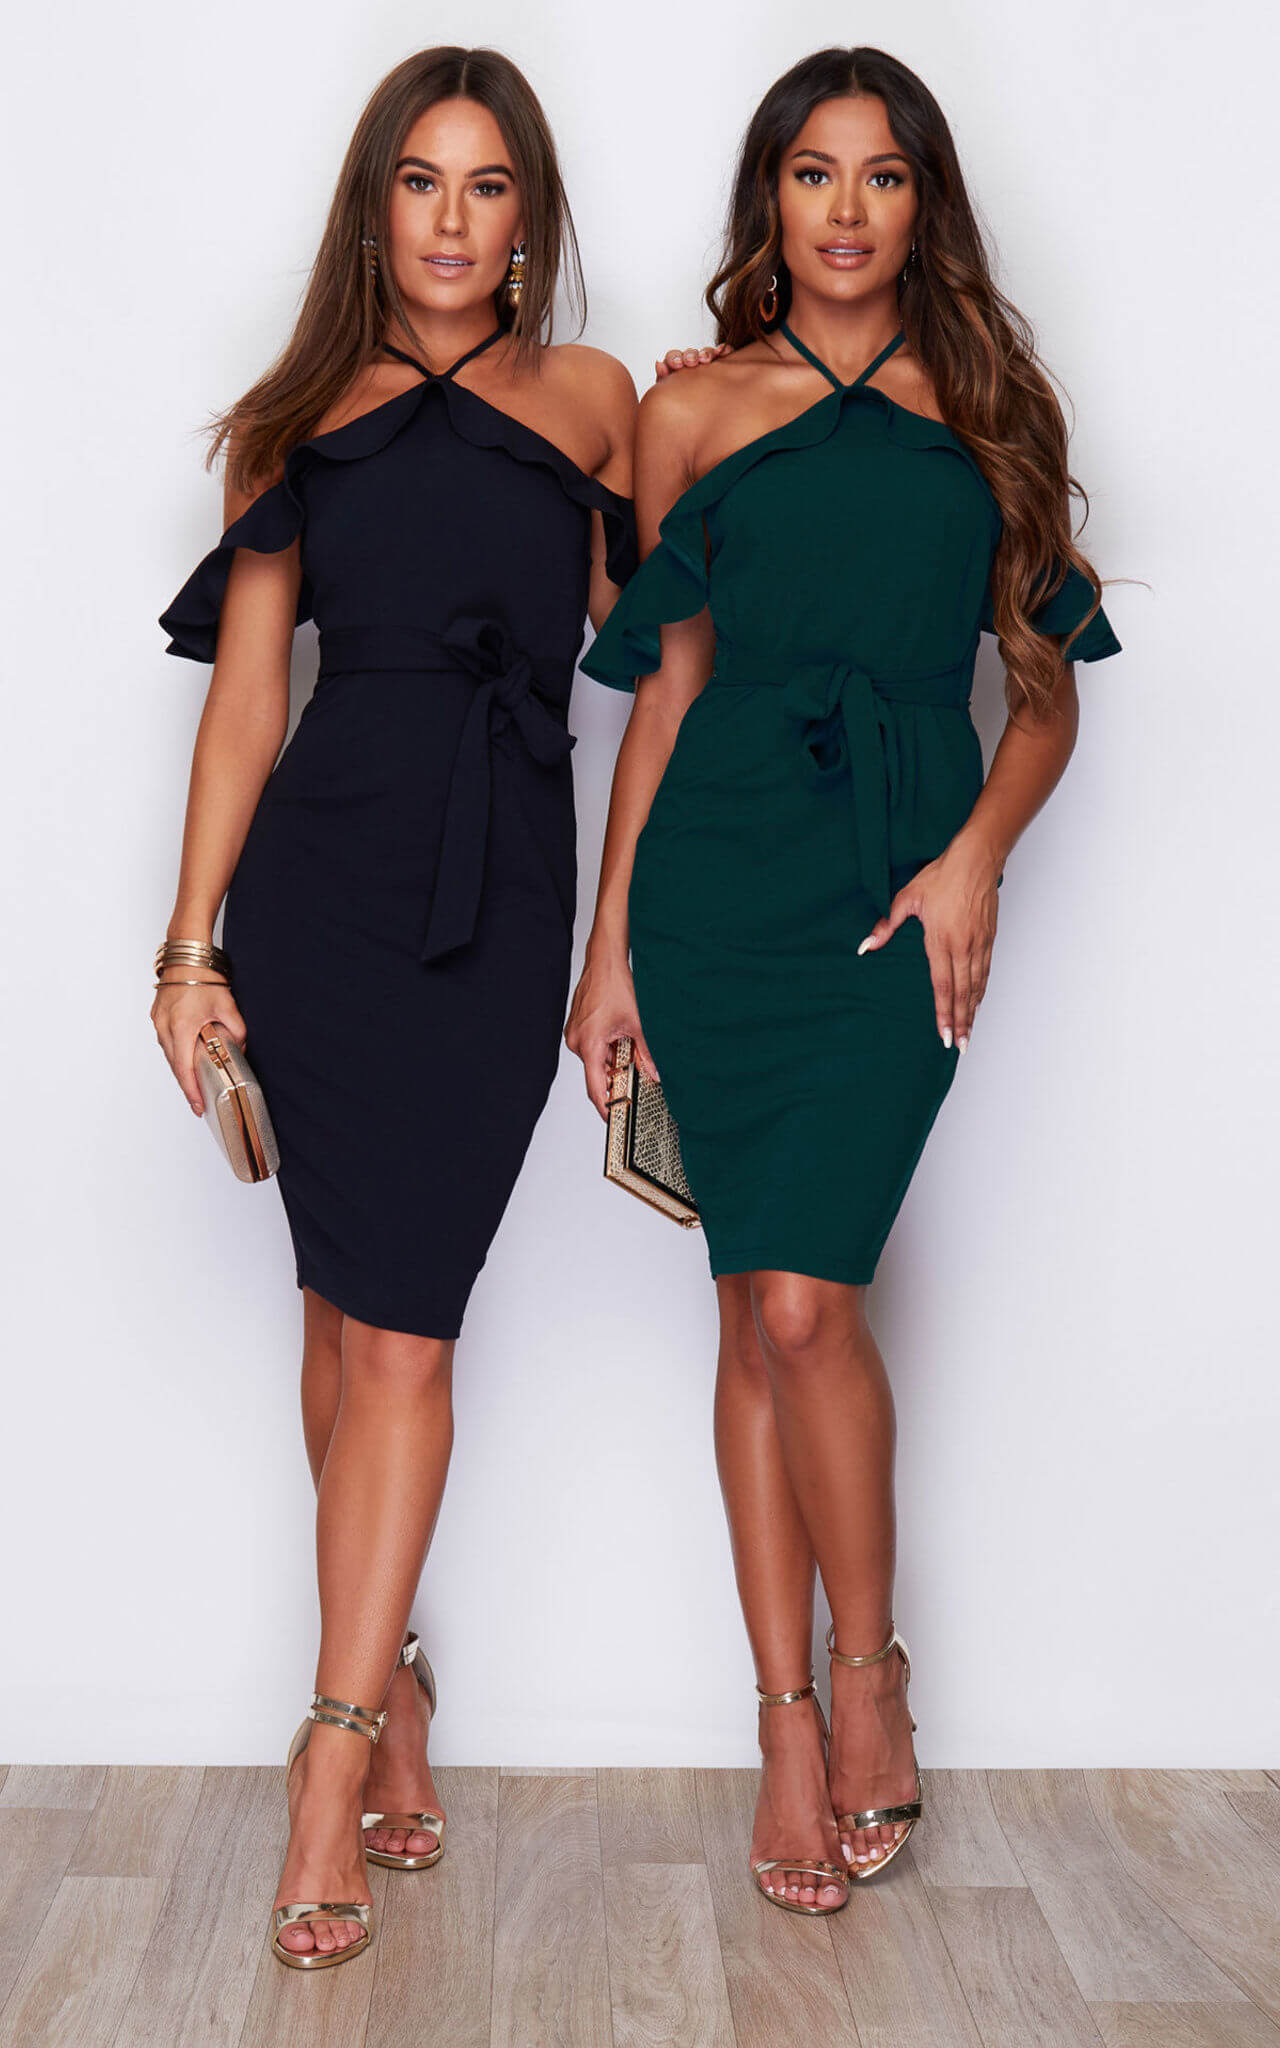 Two models wear an off the shoulder dress in navy and green